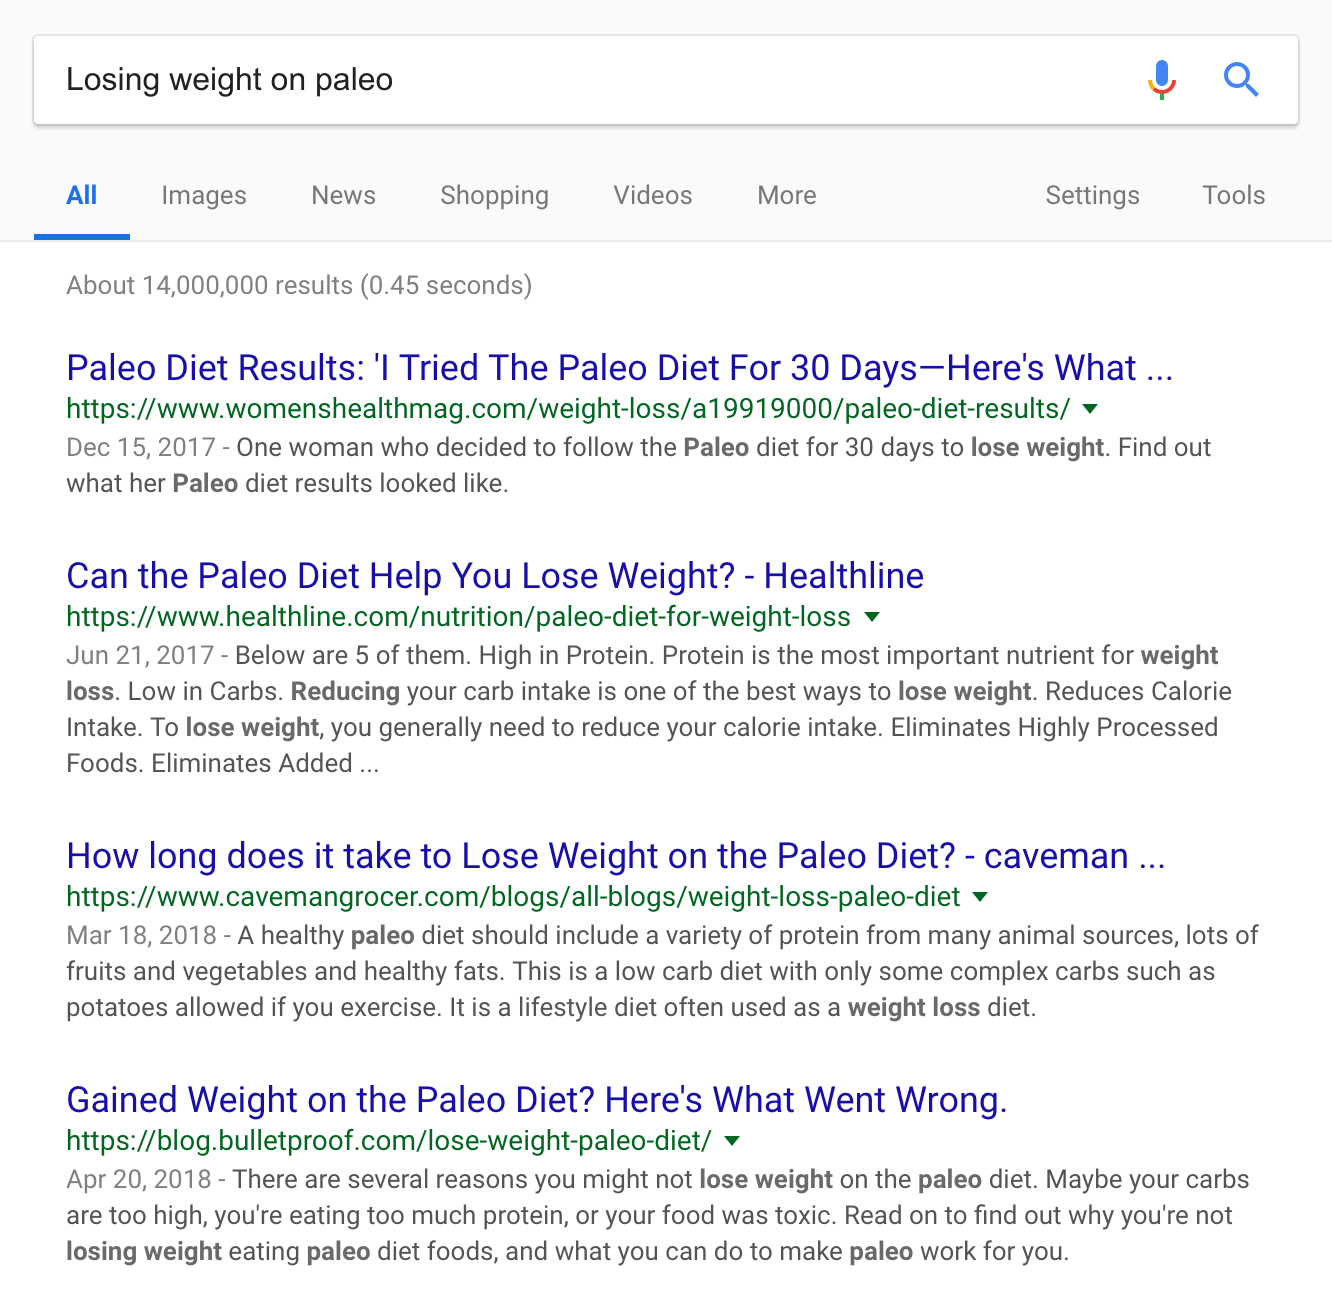 """""""Losing weight on paleo"""" SERPs"""